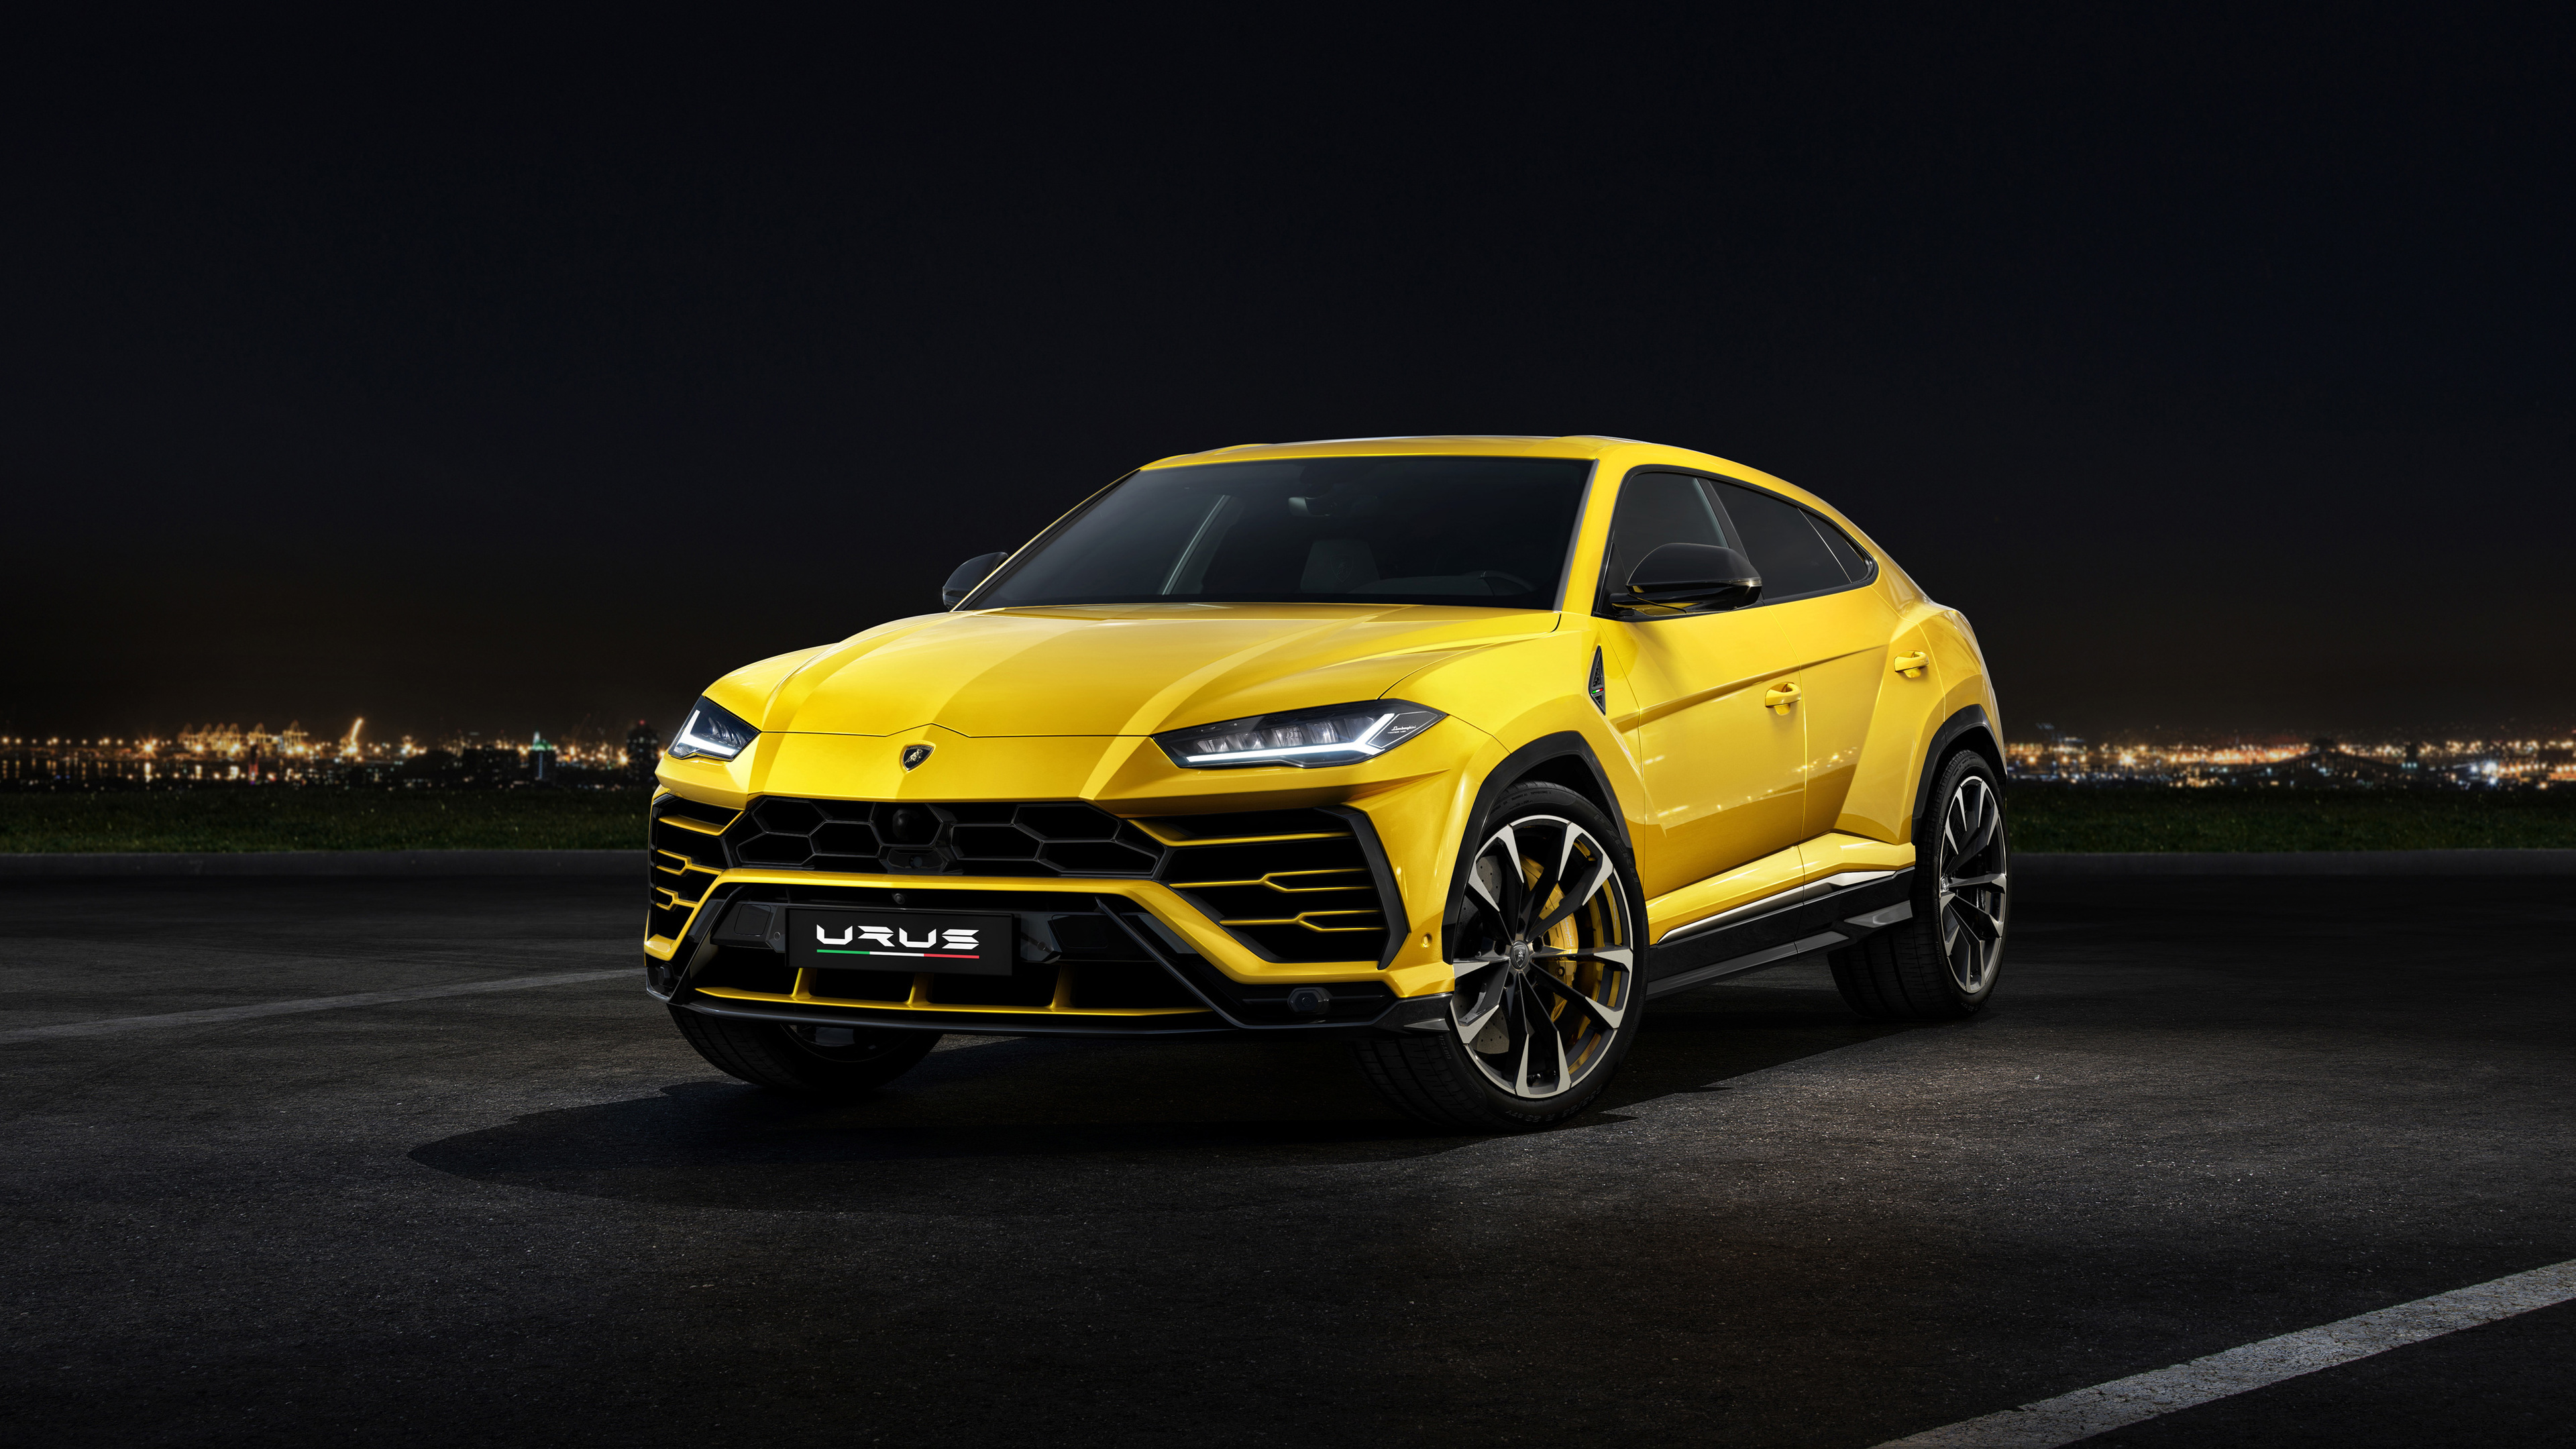 lamborghini urus 4k 1539108582 - Lamborghini Urus 4k - suv wallpapers, lamborghini wallpapers, lamborghini urus wallpapers, hd-wallpapers, cars wallpapers, 4k-wallpapers, 2018 cars wallpapers